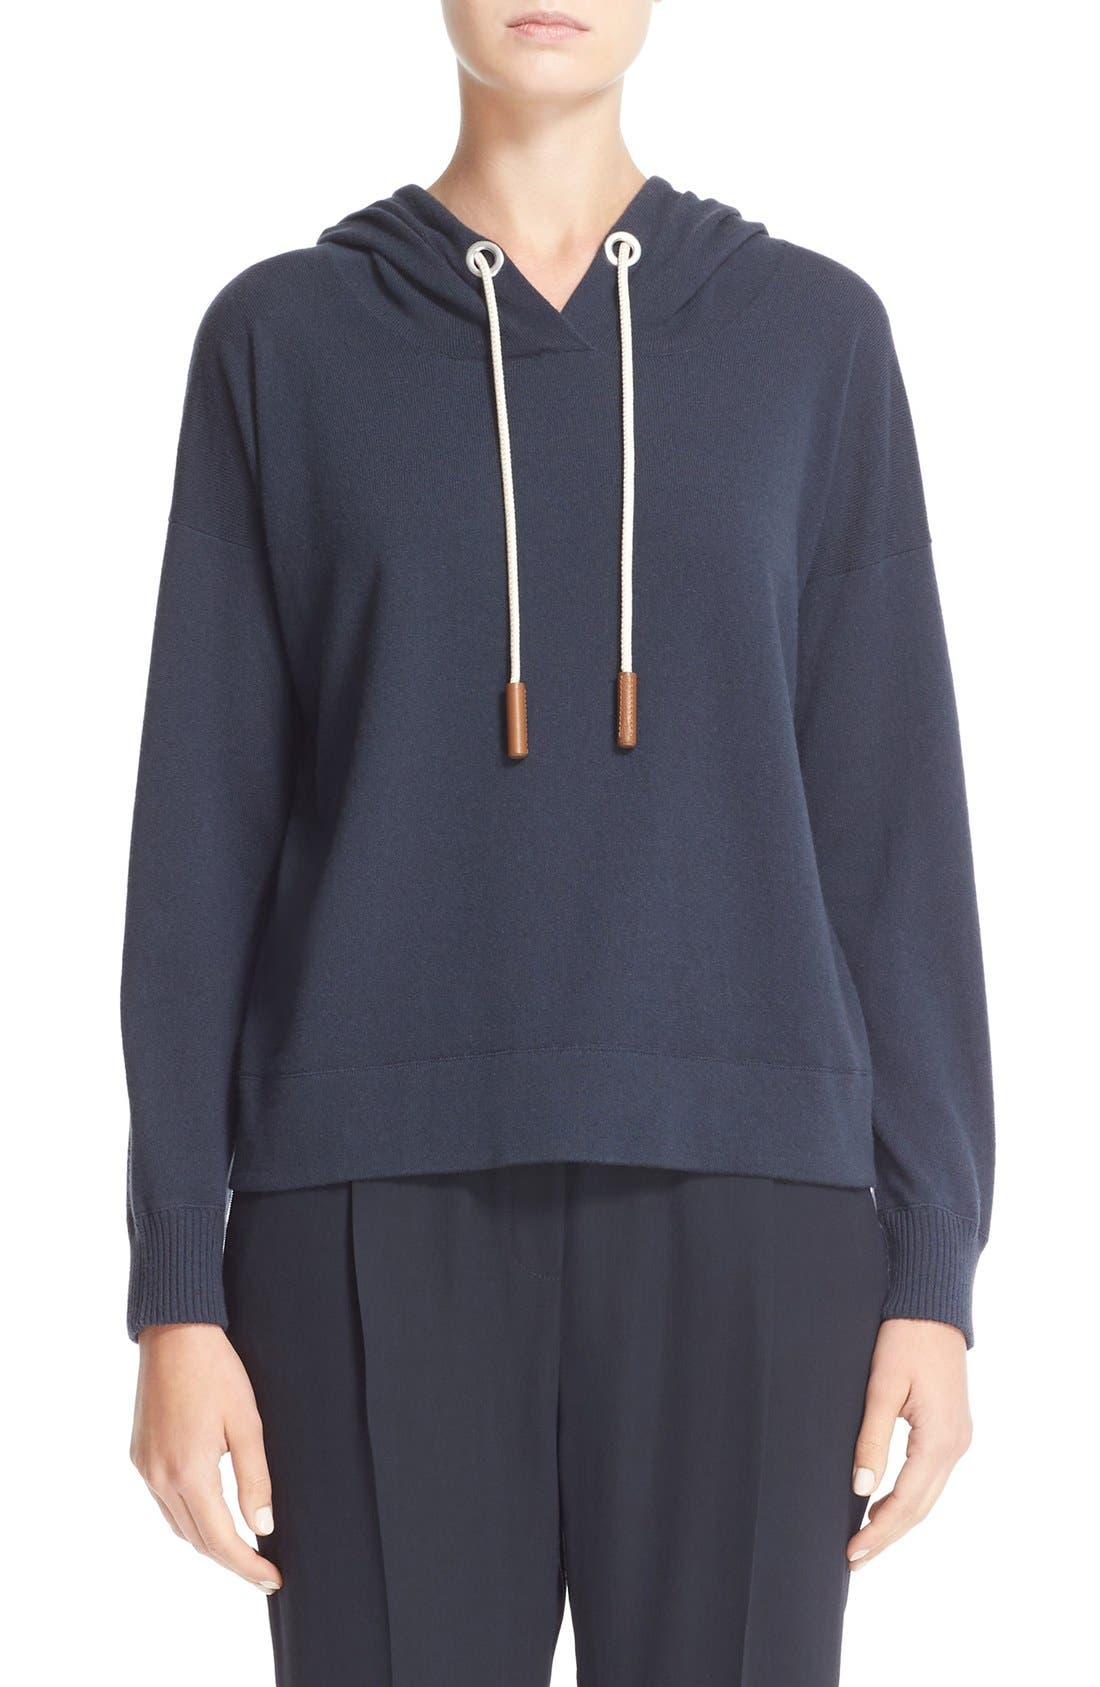 Cashmere Hooded Sweatshirt,                             Main thumbnail 1, color,                             400